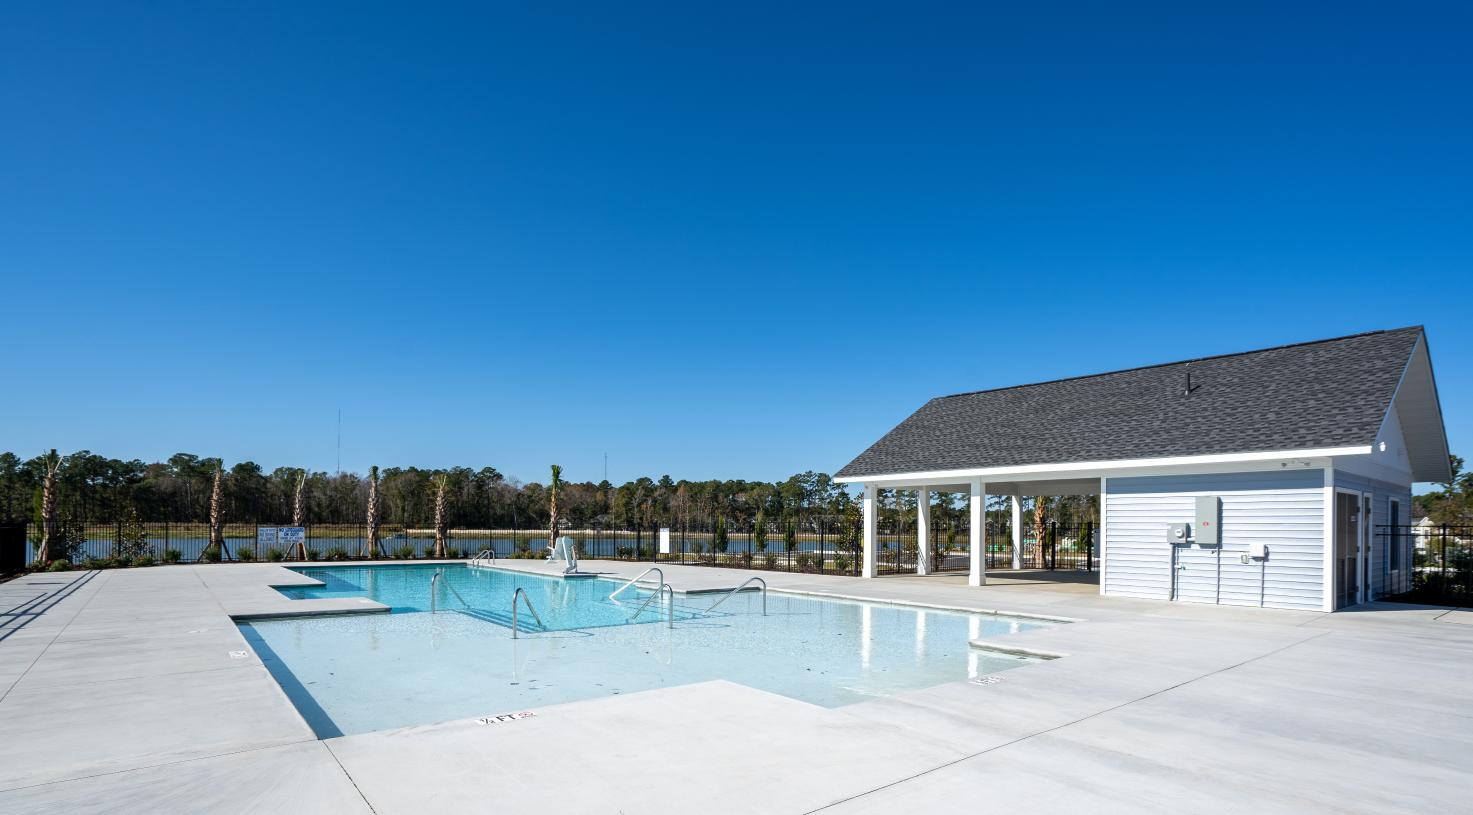 Community pool with views of the lake